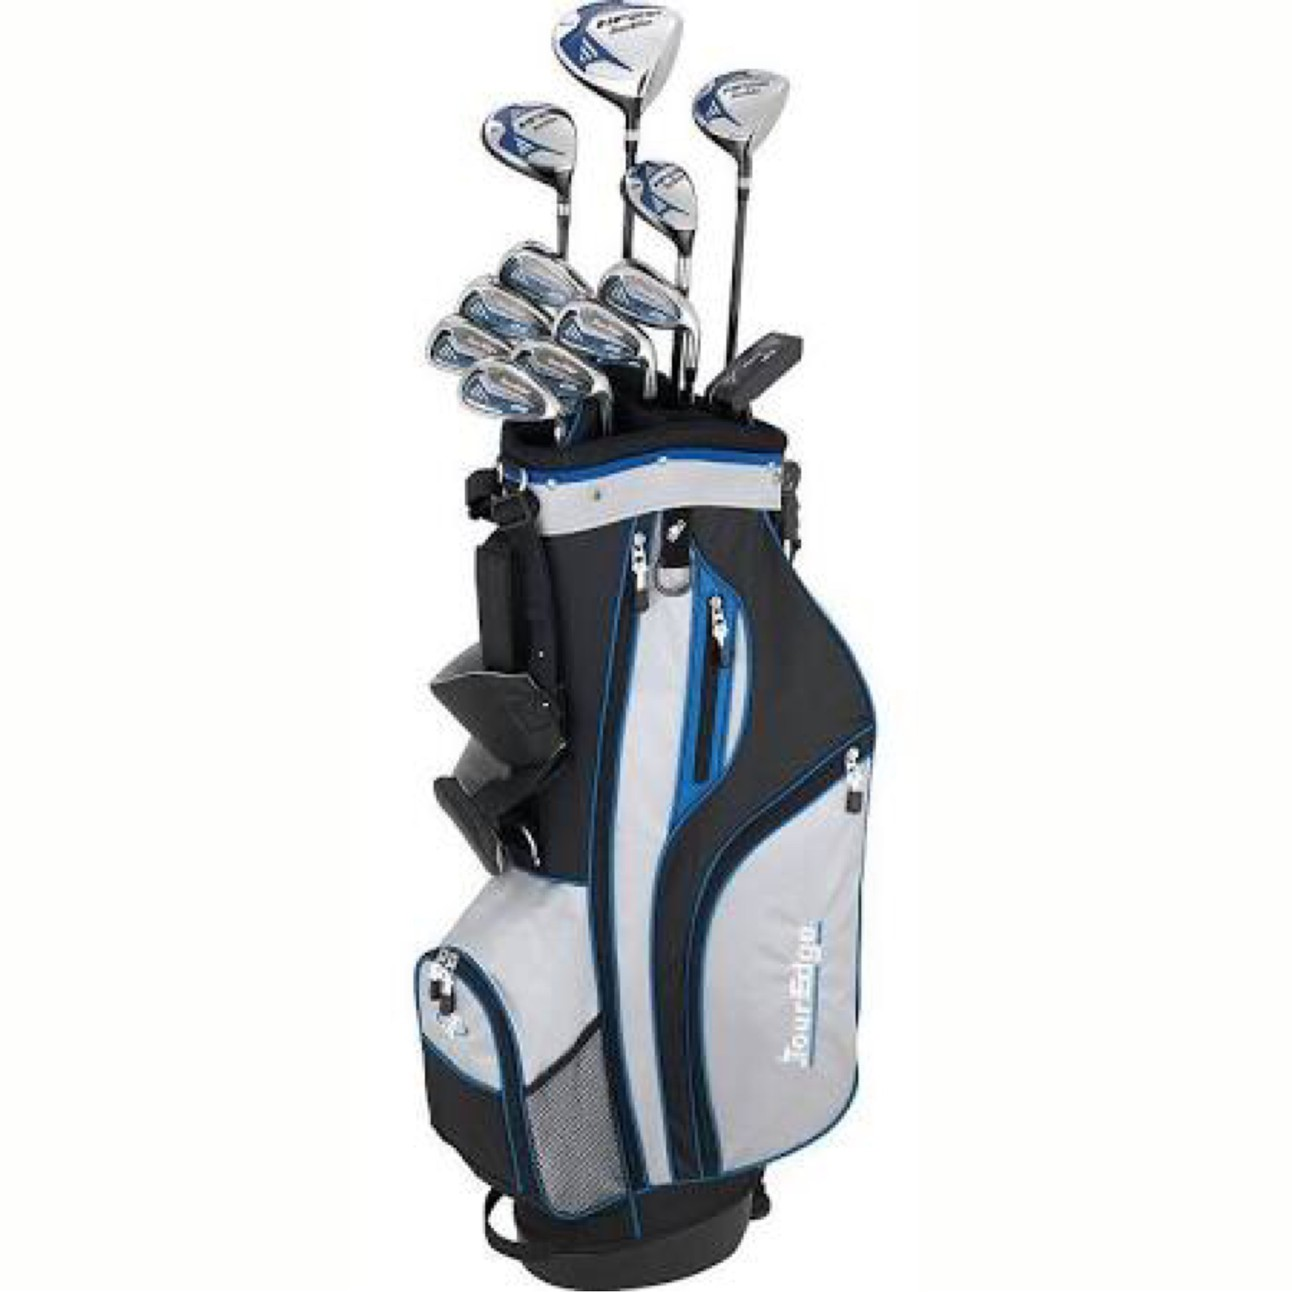 25df2878 Tour Edge HP25 Complete Set (Men's, Senior, 17pc) Golf Clubs New